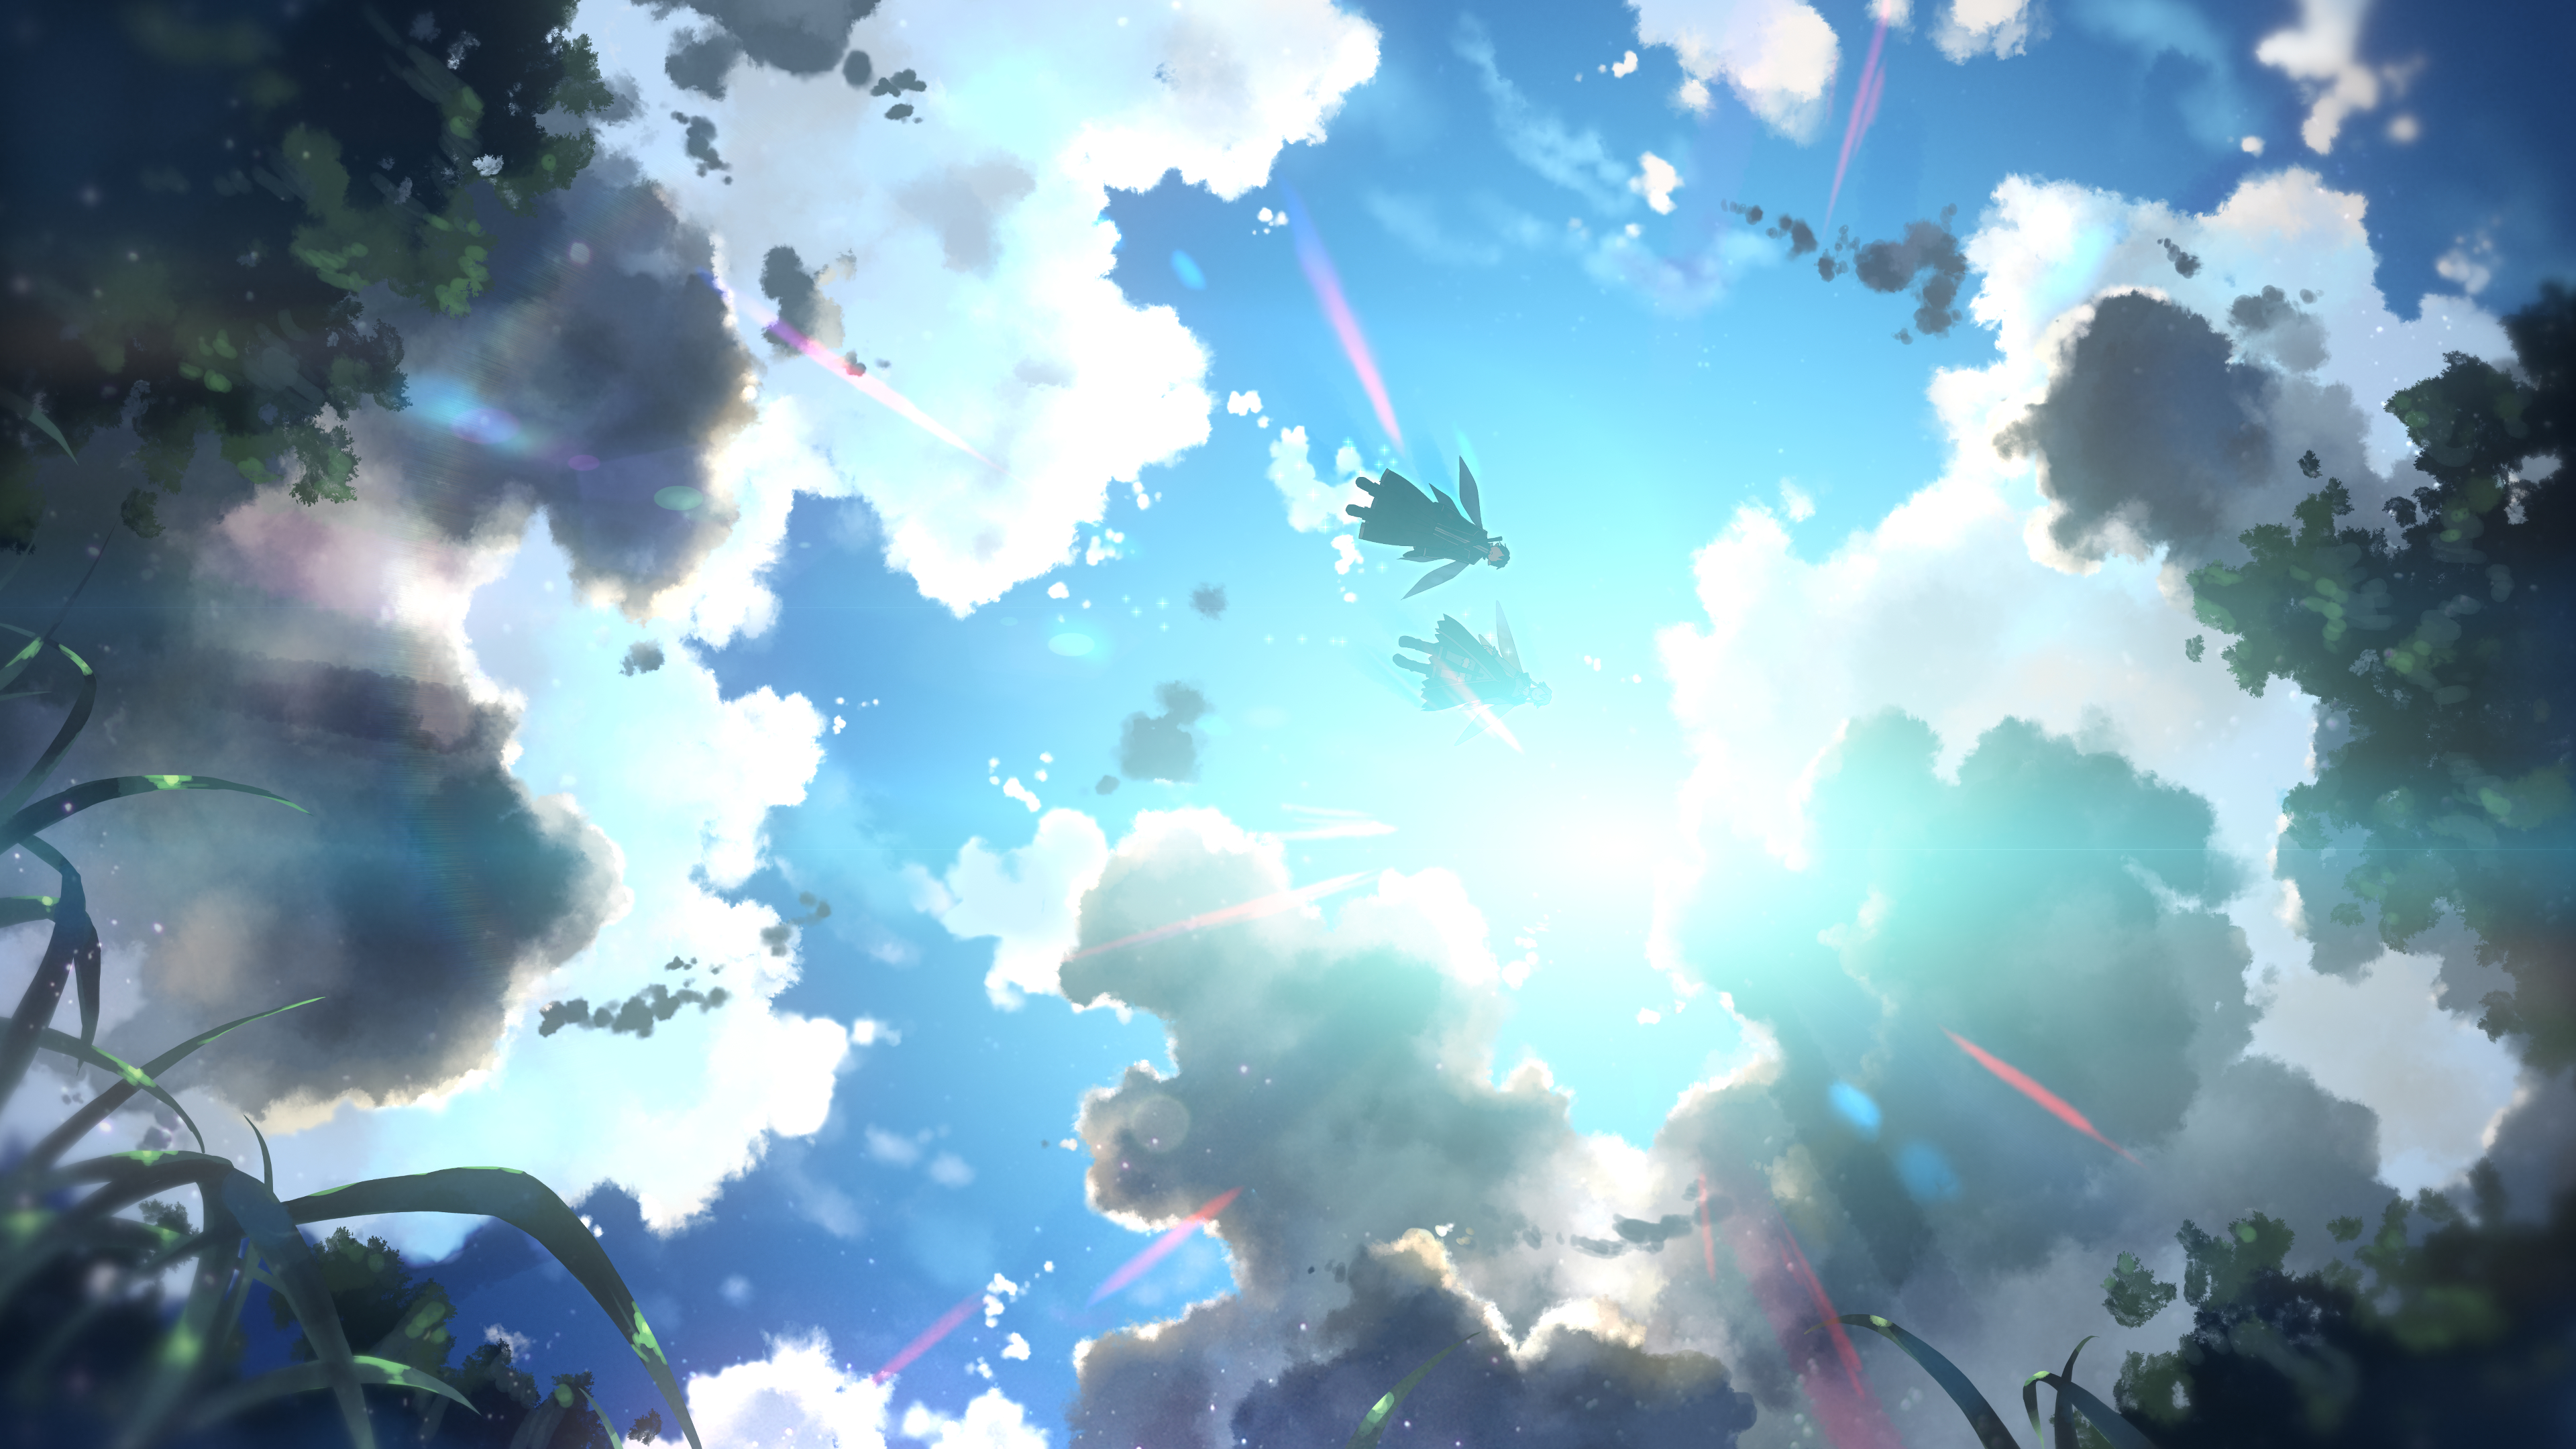 Sword Art Online Hd Wallpaper 1915589 Zerochan Anime